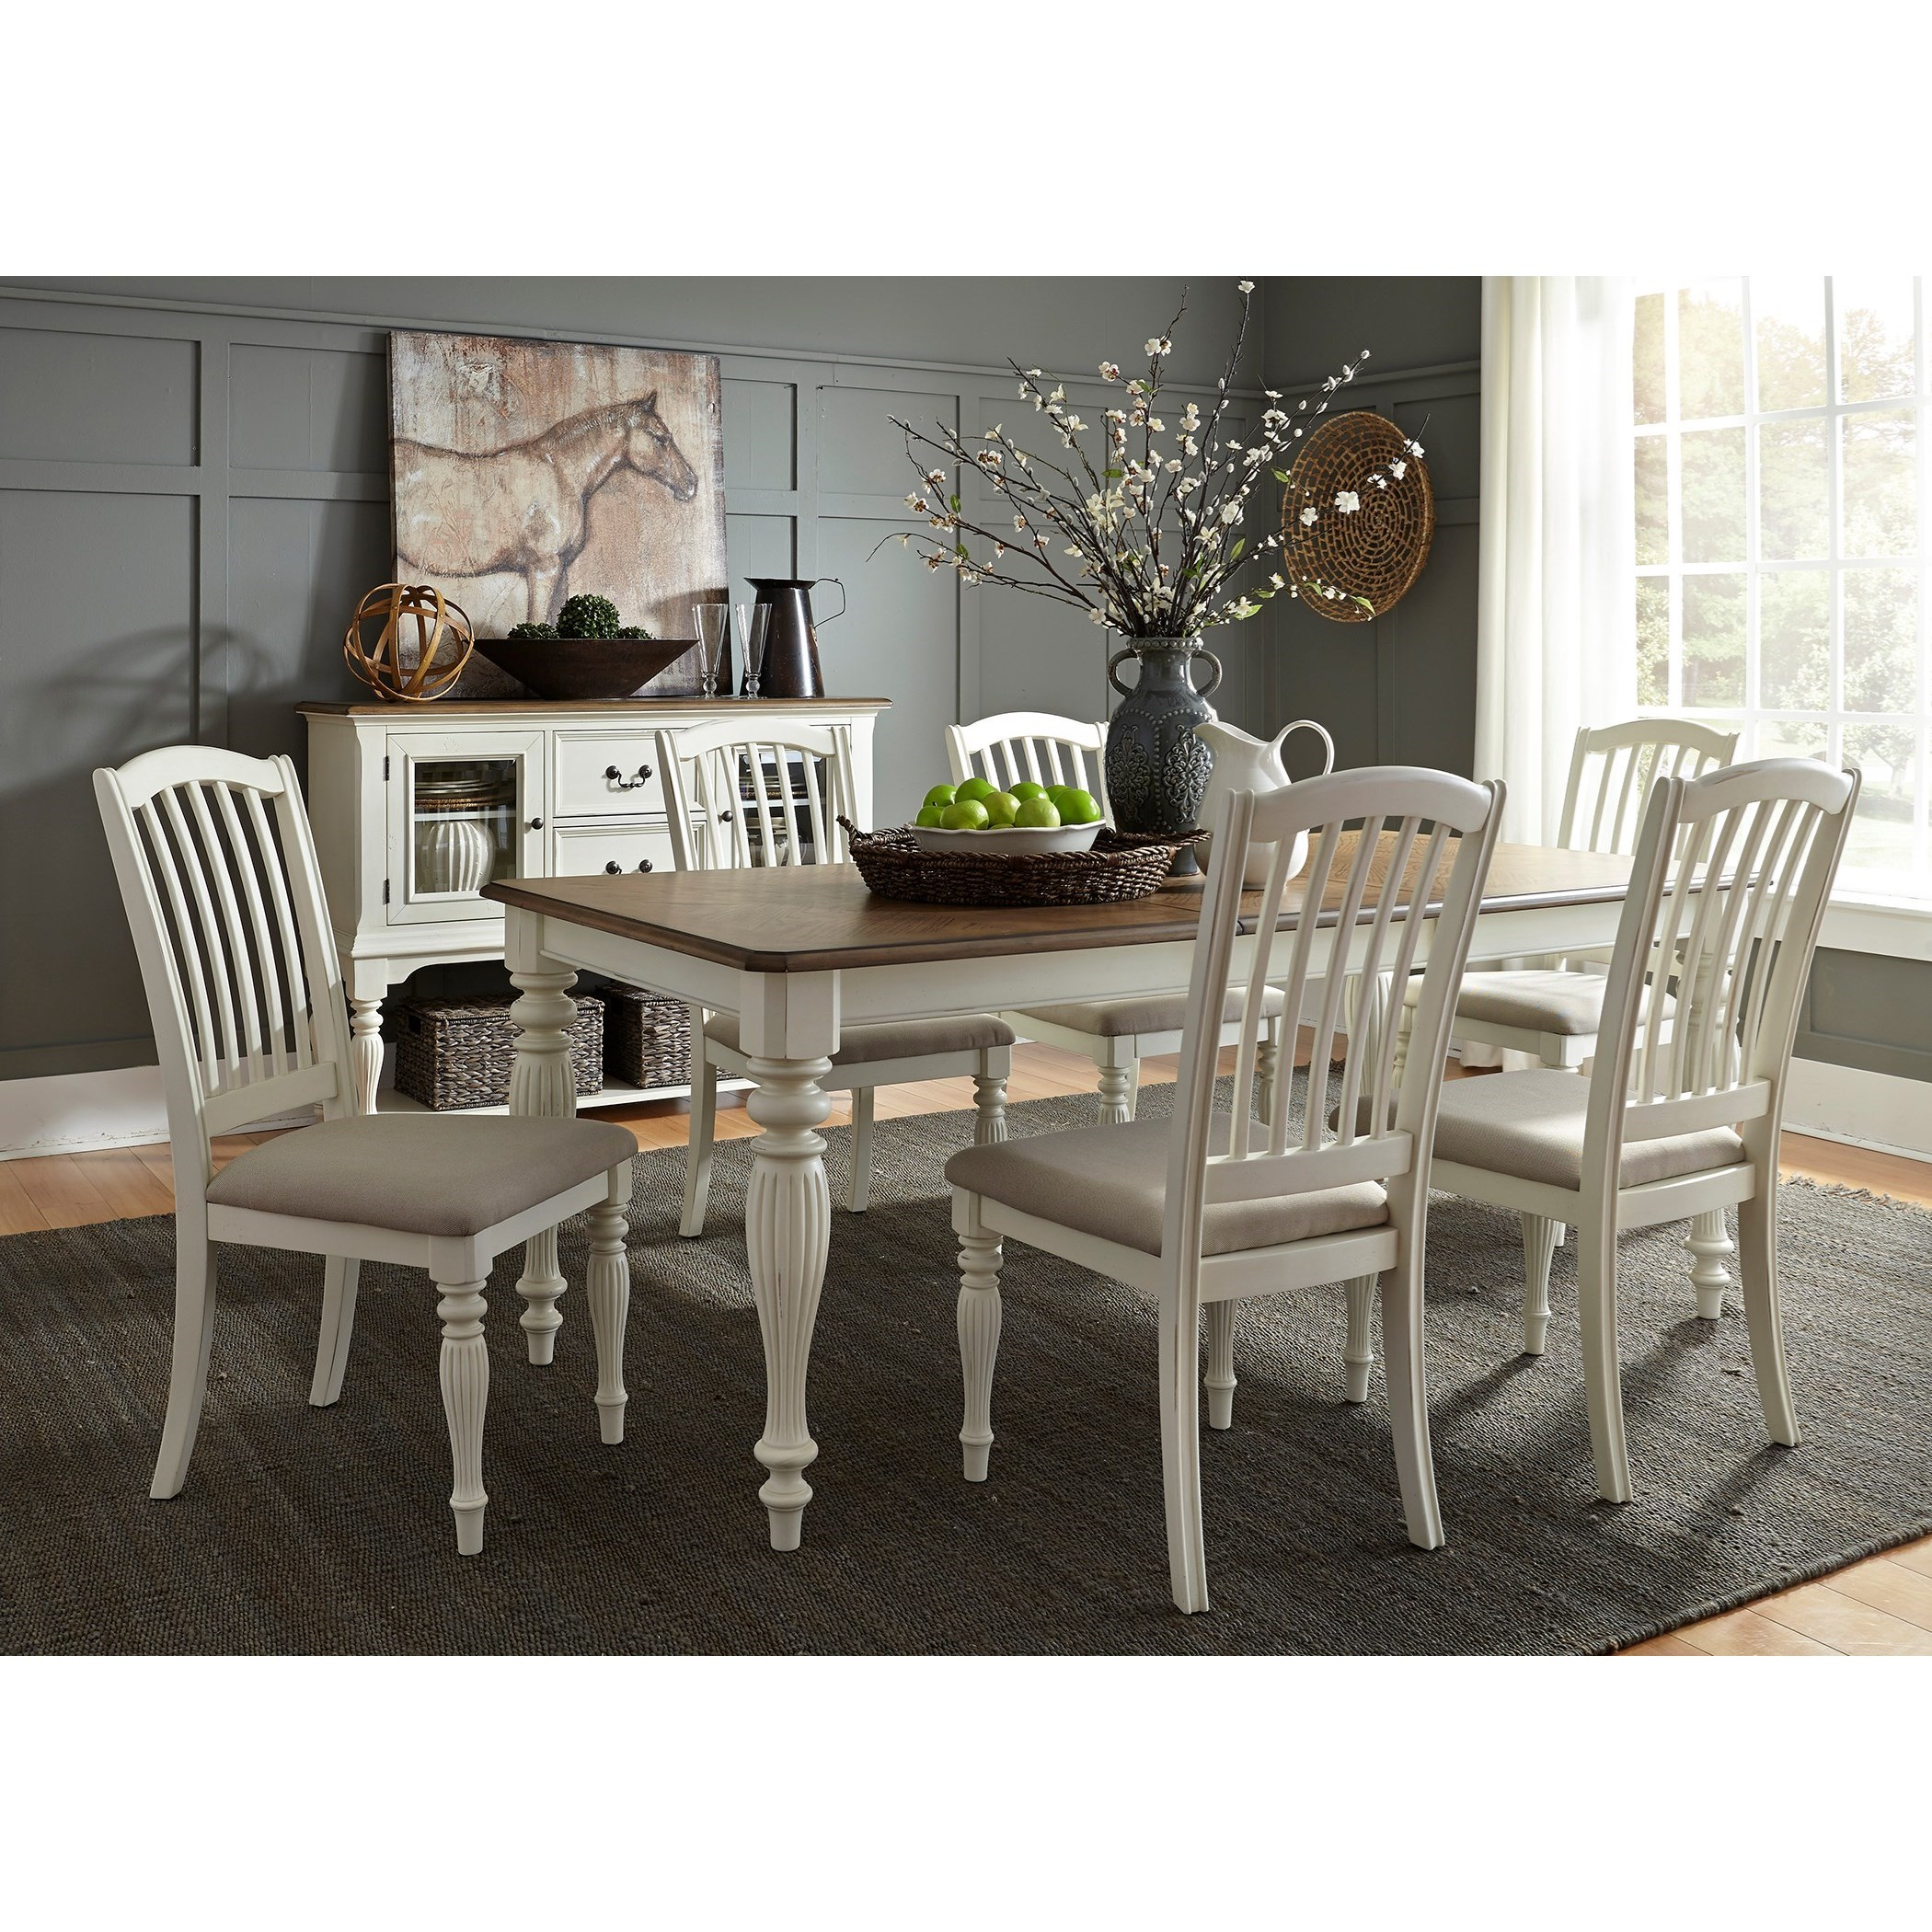 Cumberland Creek Dining 7 Piece Rectangular Table Set  by Libby at Walker's Furniture